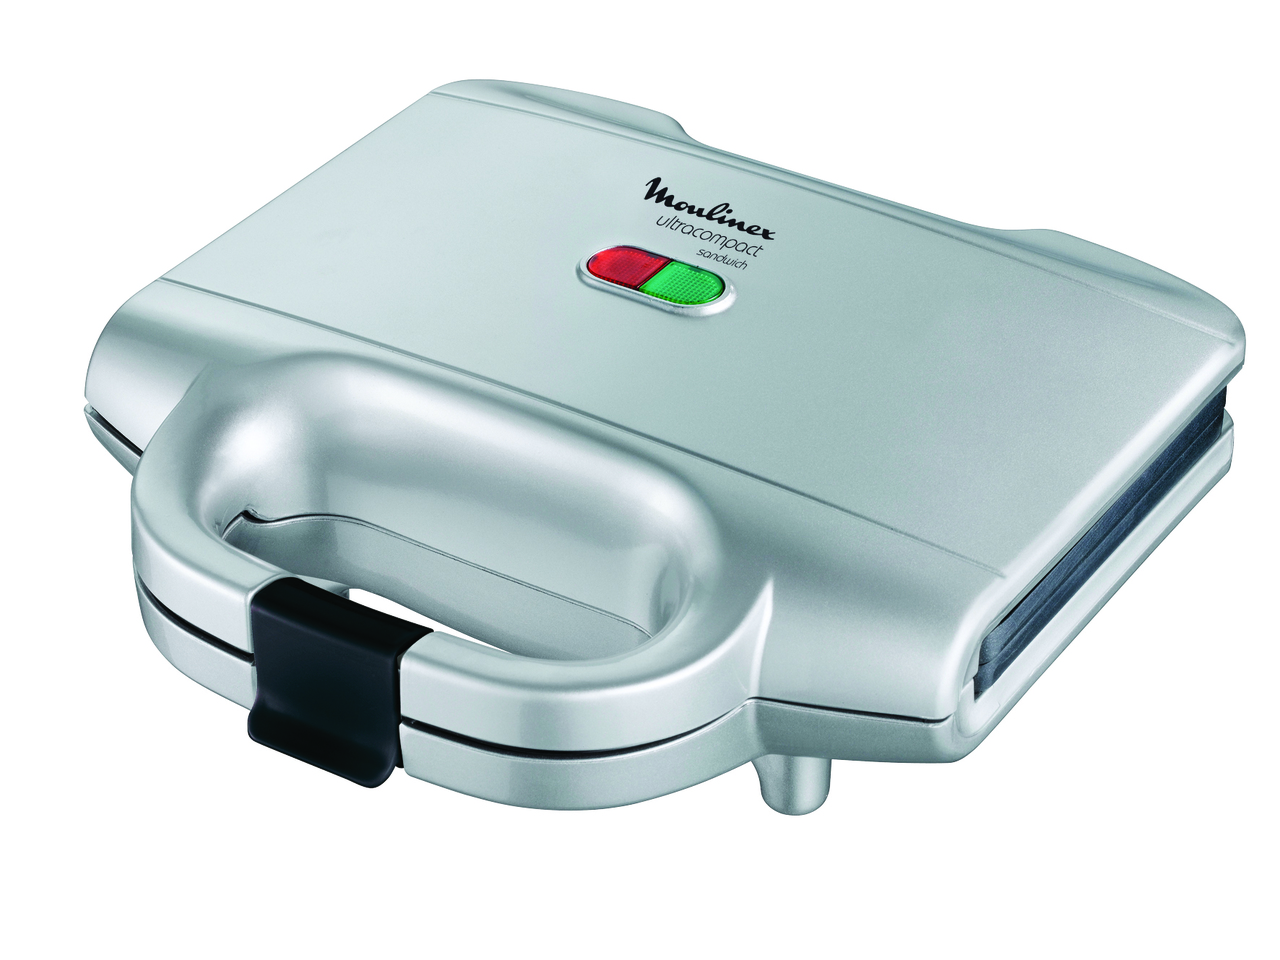 Image of Moulinex Ultra Compact 2 Slice Sandwich Toaster